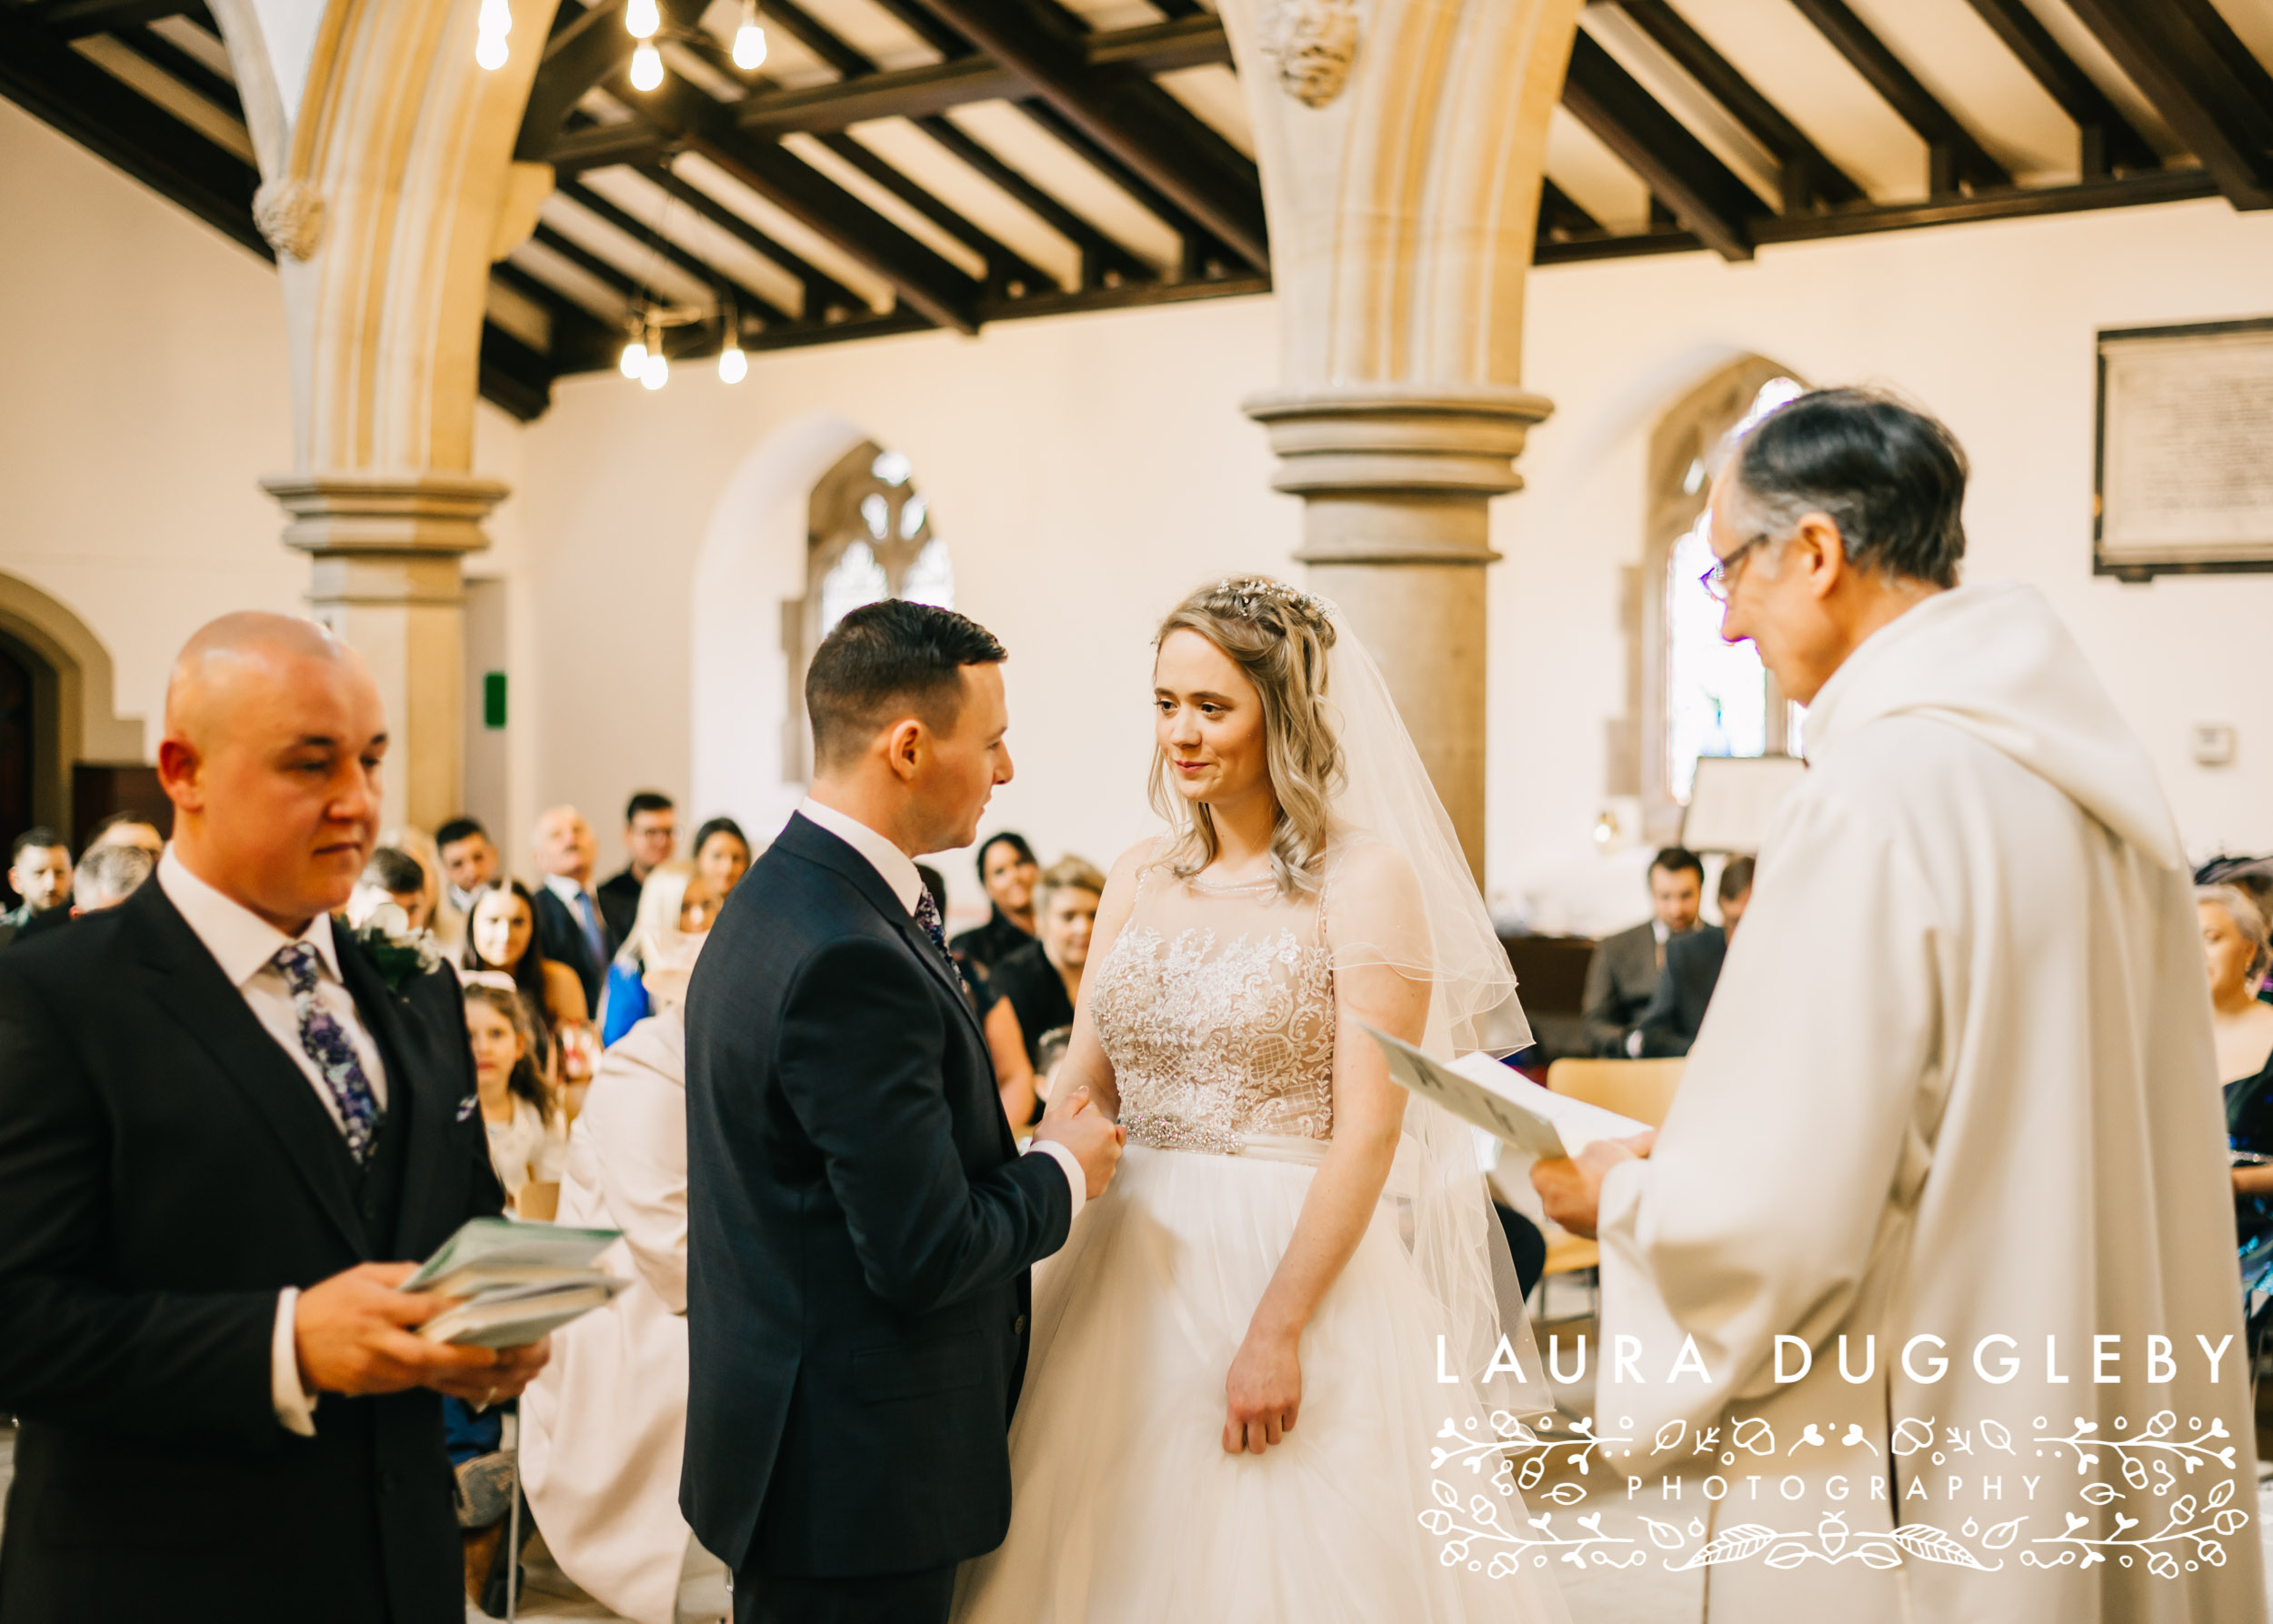 Mawdesley Village Hall - Lancashire Wedding Photographer - Laura Duggleby Photography3